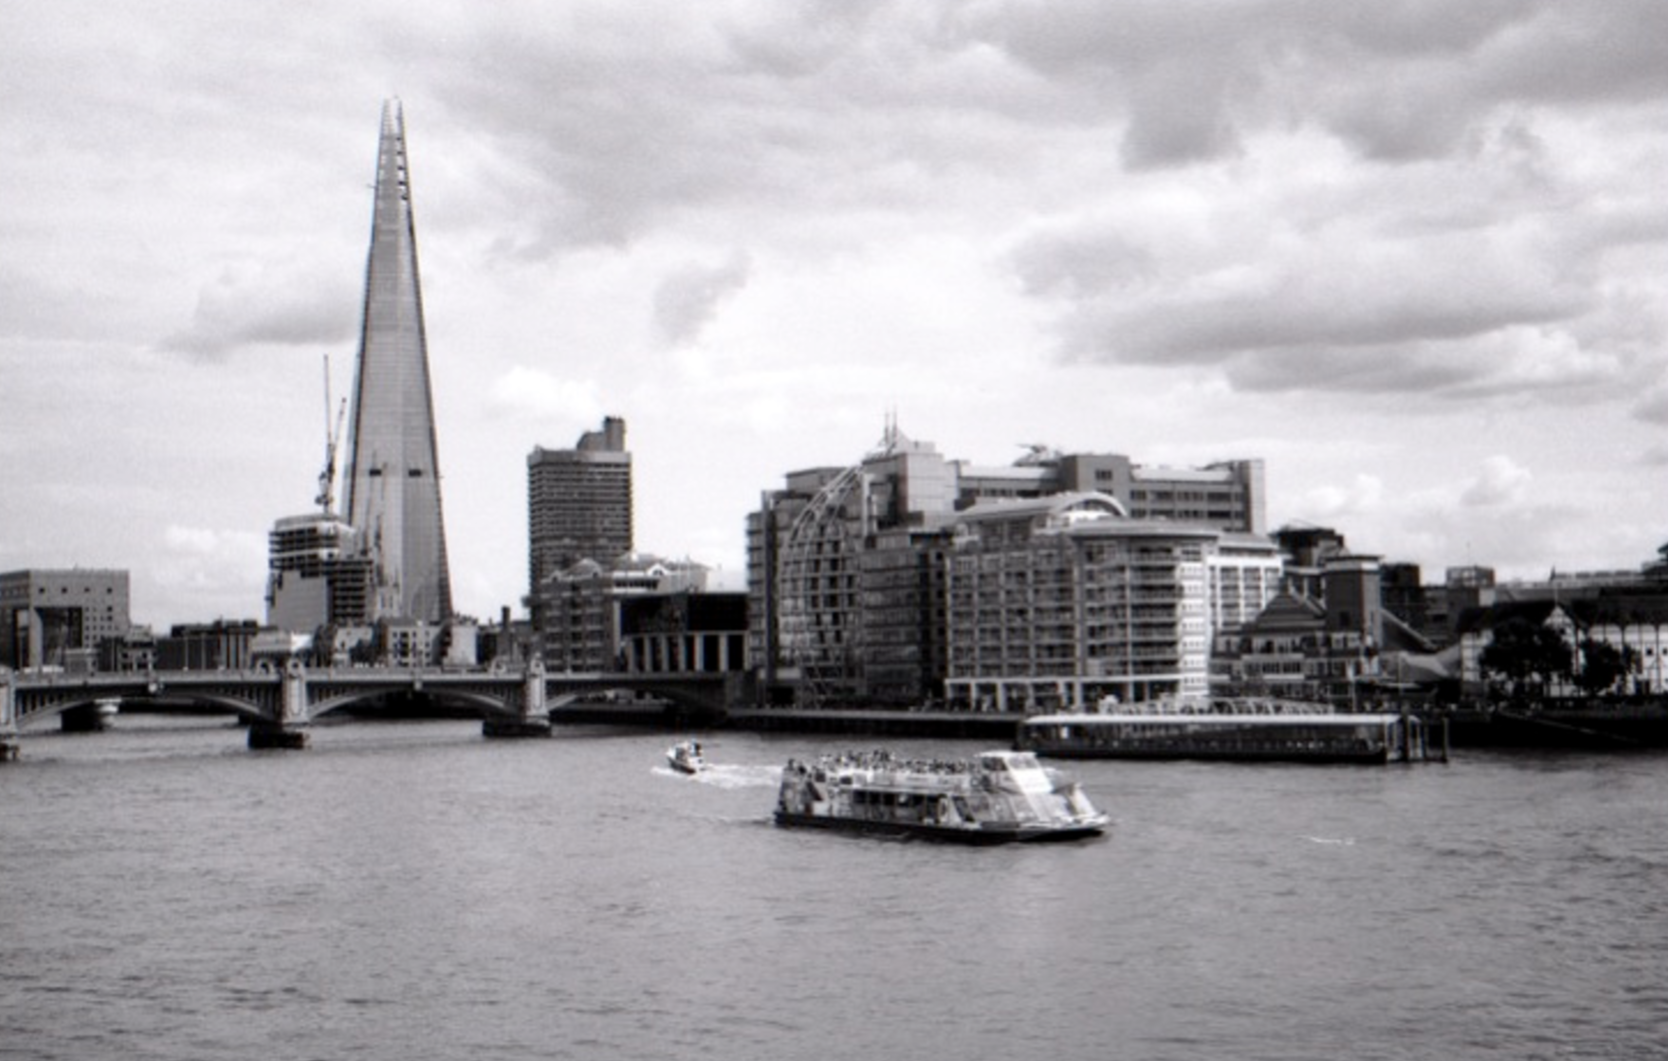 Man built skyline - view from the Millennium Bridge, London, England (Summer 2013) //  Kodak T-Max 100, Olympus OM-2n, Epson V330 // Once a blank piece of land, now home to diverse constructions including the Globe Theatre first opened in 1599 to the Shard designed by Renzo Piano, opened in 2013. I find cities fascinating and love this scene simply because we have so many of London's icons in one frame spanning almost 600 years of history.